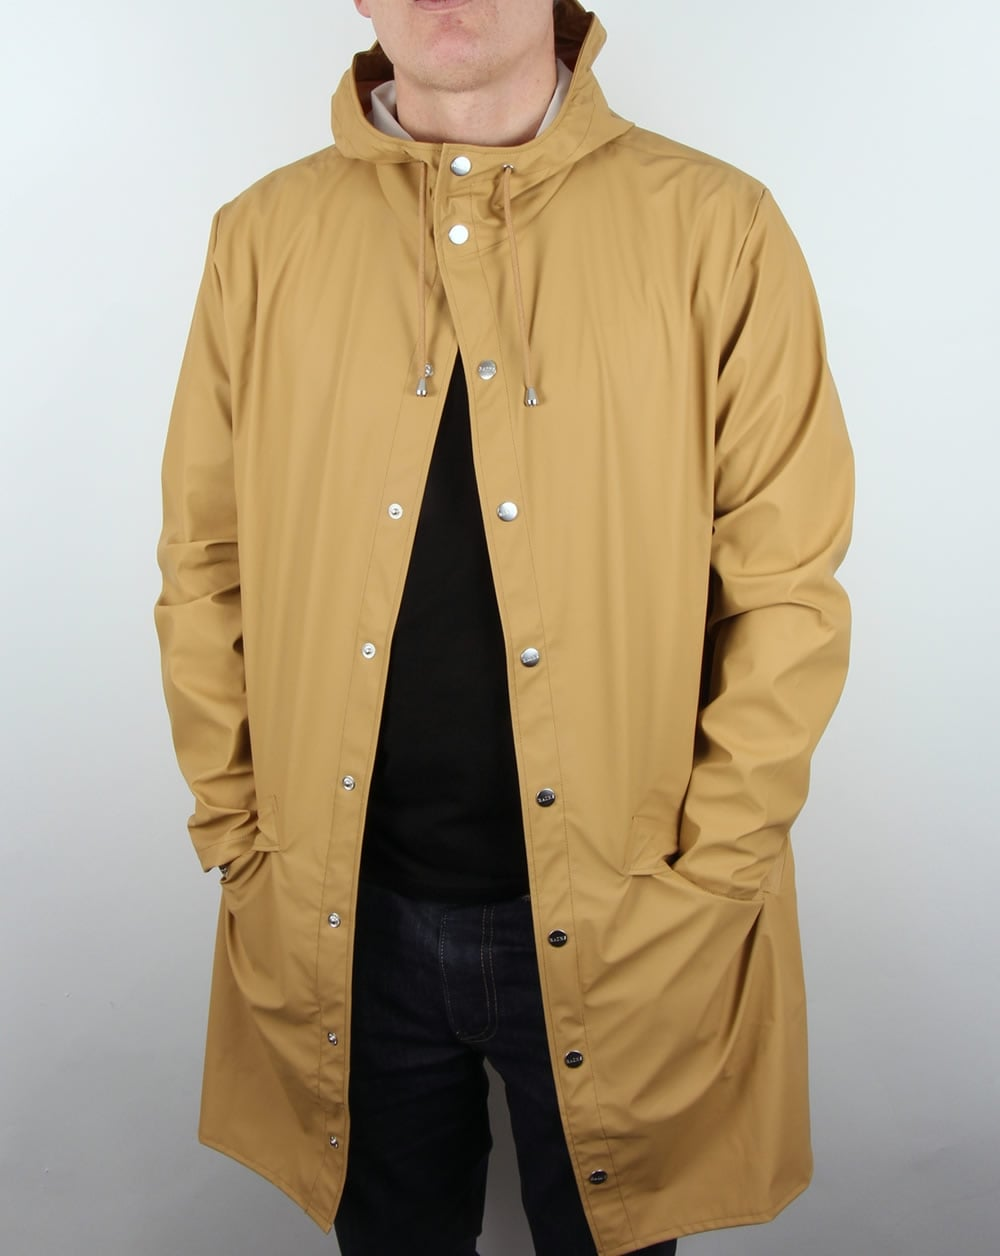 London Fog Jackets & Coats | Classic Double Breasted Long Khaki Trench Coat | Color: Cream/Tan | Size: S This Classically Styled Trench Coat Is The Perfect Piece For Refined Looks. Crafted With A Silky Finish, This Double-Breasted Coat Will Become A Seasonal Favorite For Years To Come.